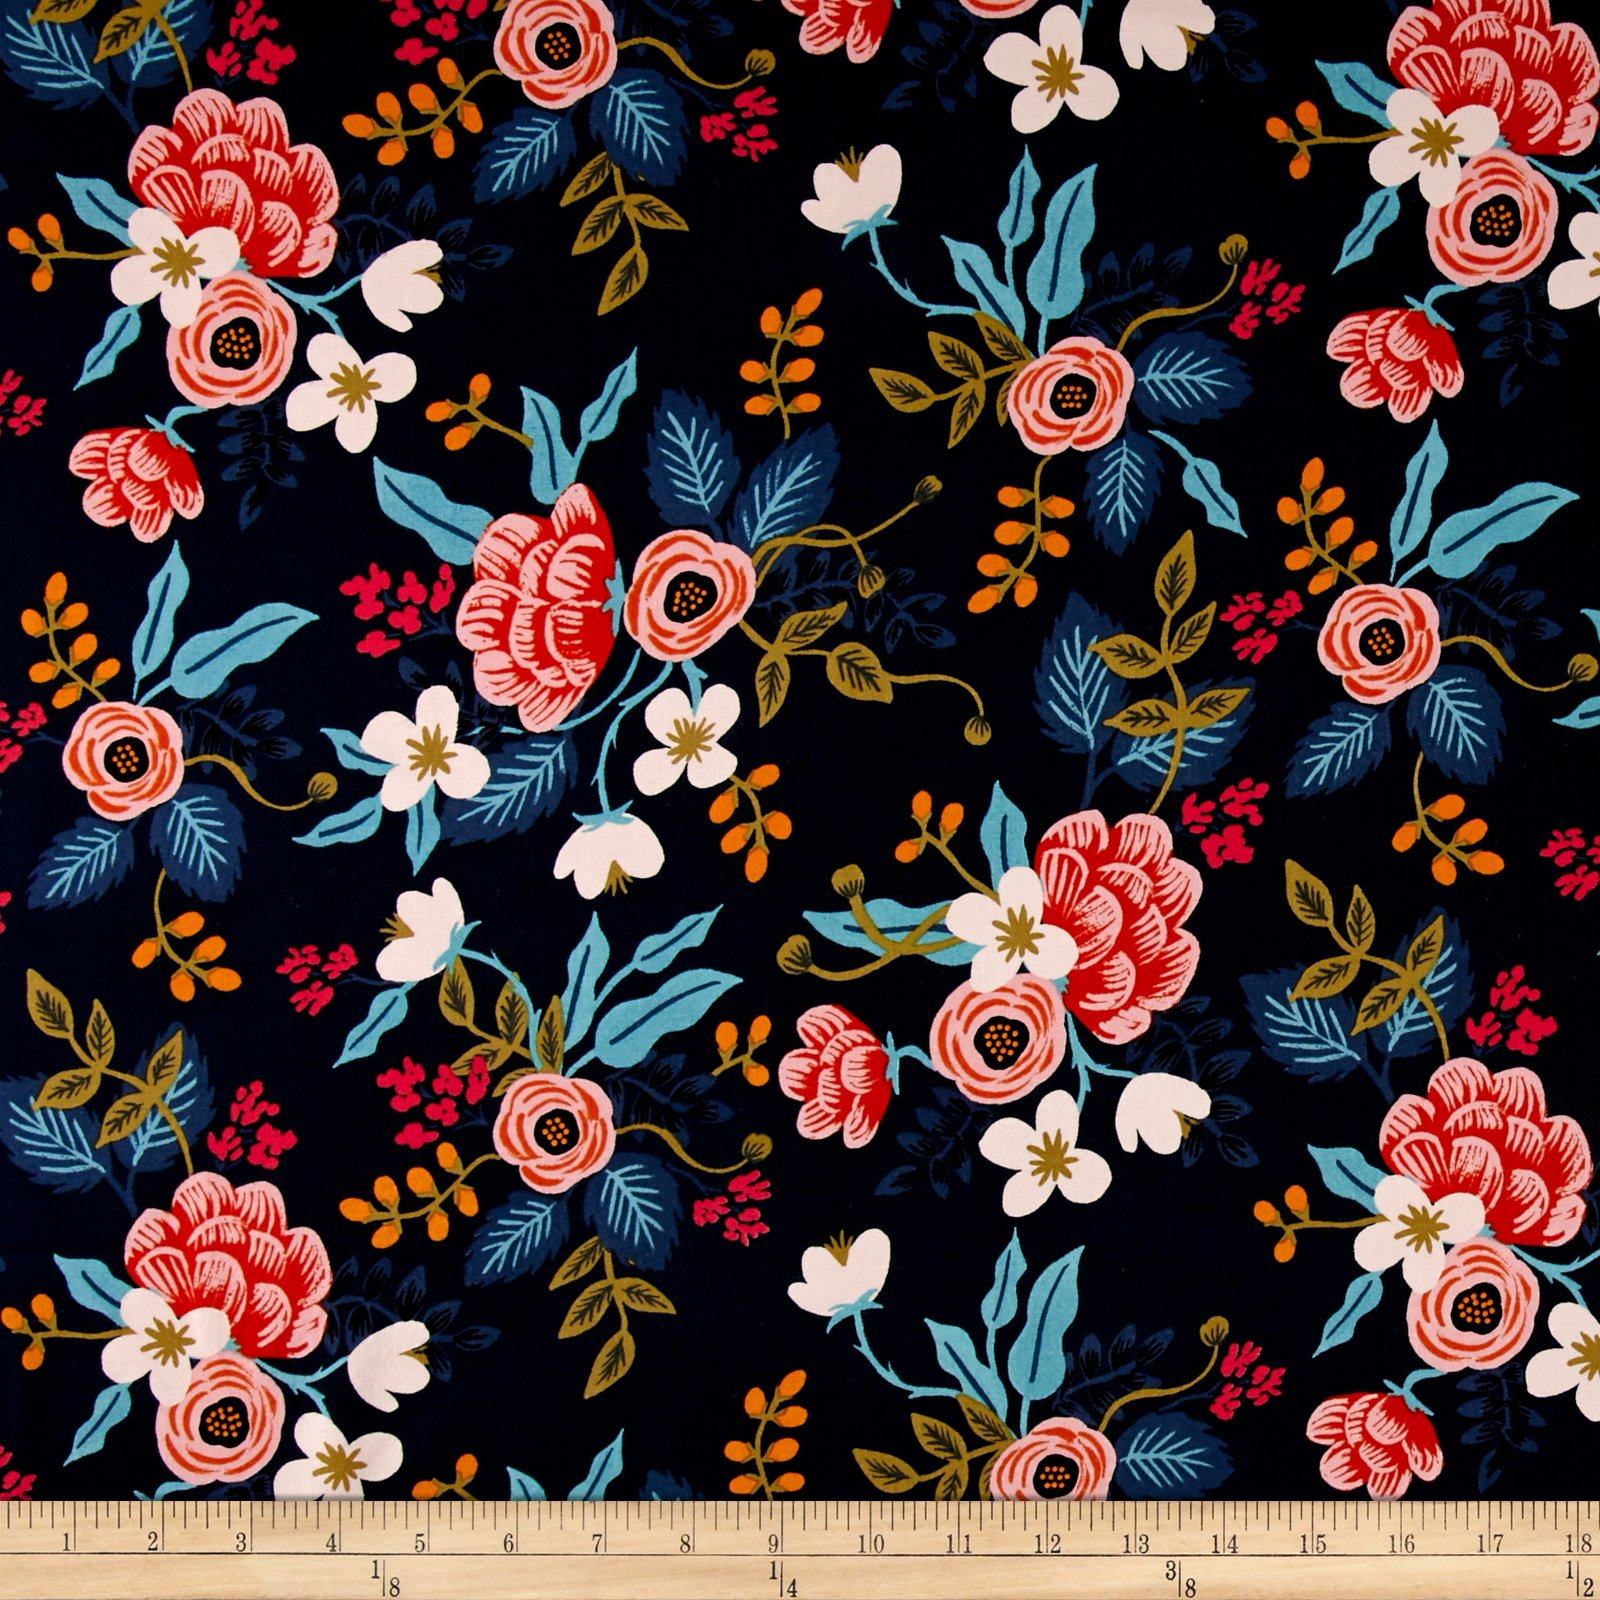 Cotton + Steel Rifle Paper Co. Les Fleurs Rayon Challis Birch Floral Fabric by The Yard, Navy